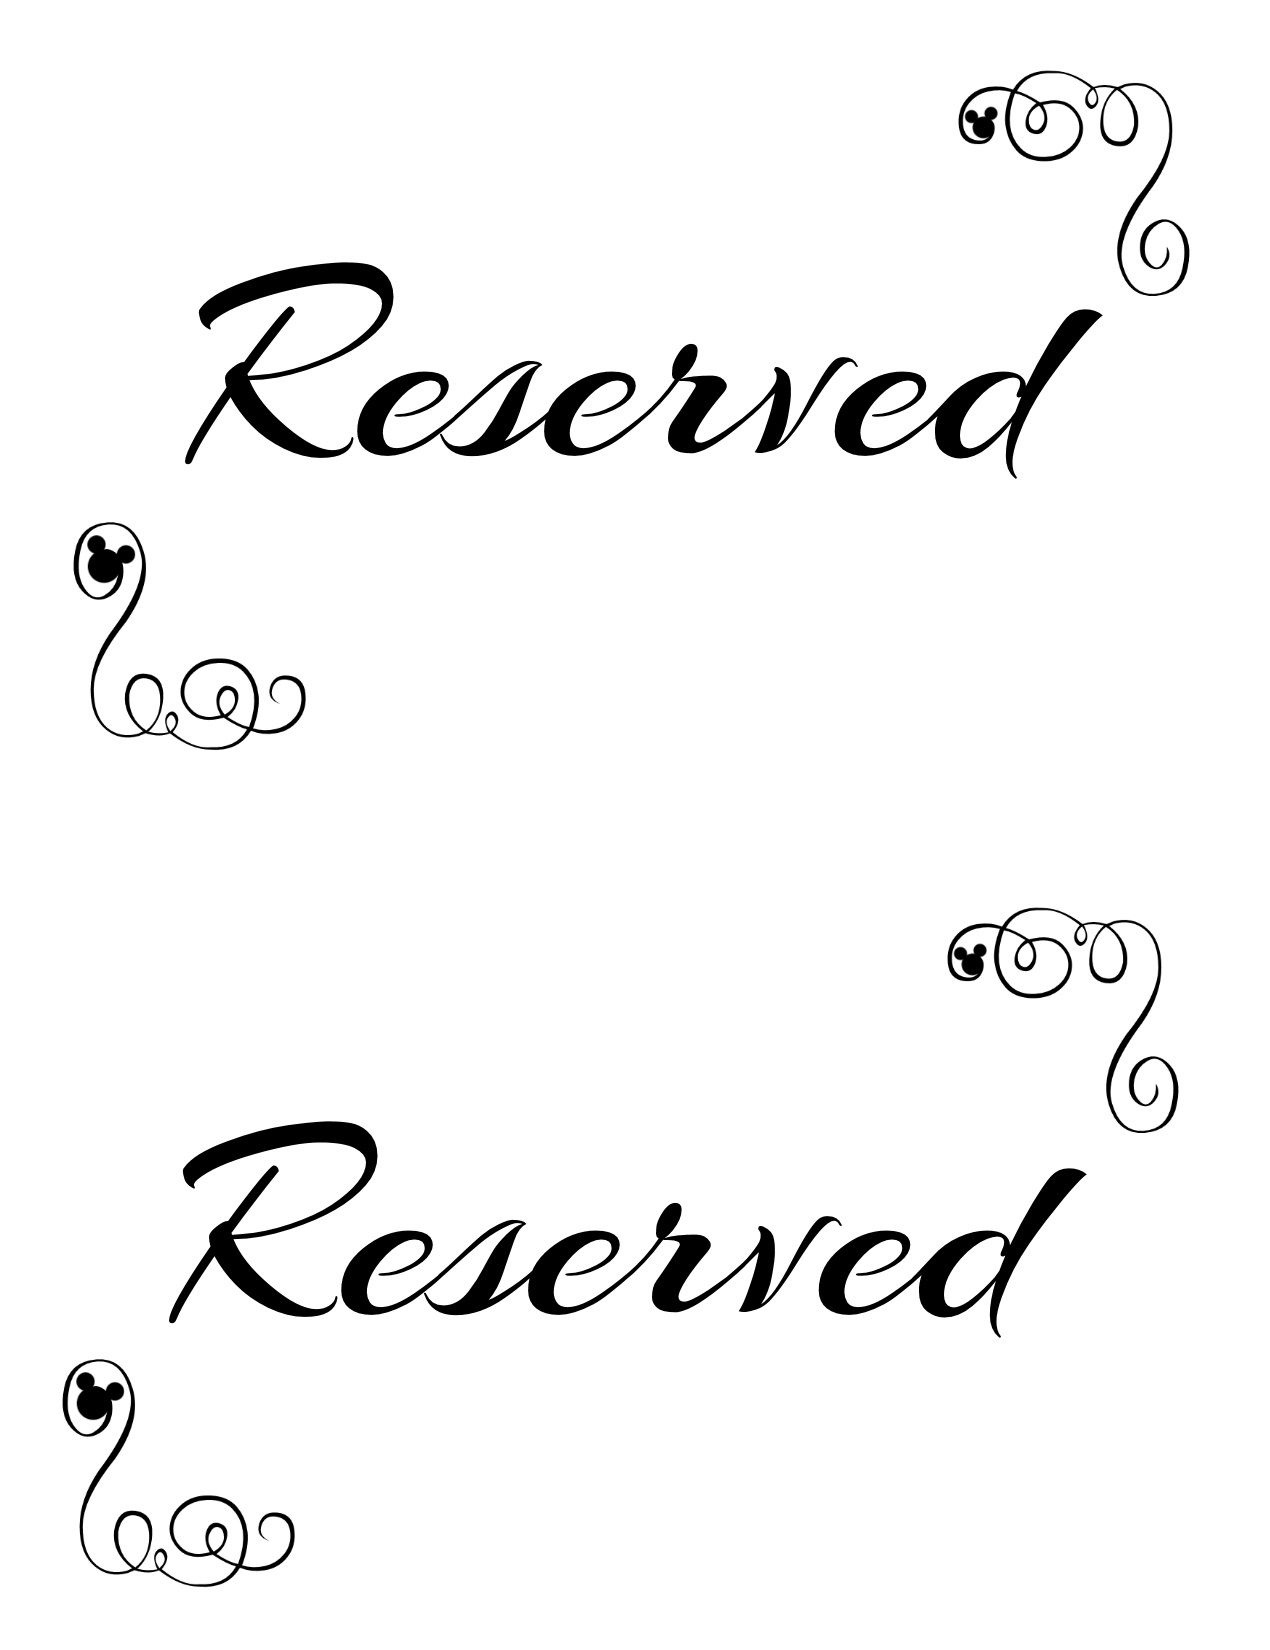 Free Printable Reserved Seating Signs For Your Wedding Ceremony - Free Printable Signs Templates